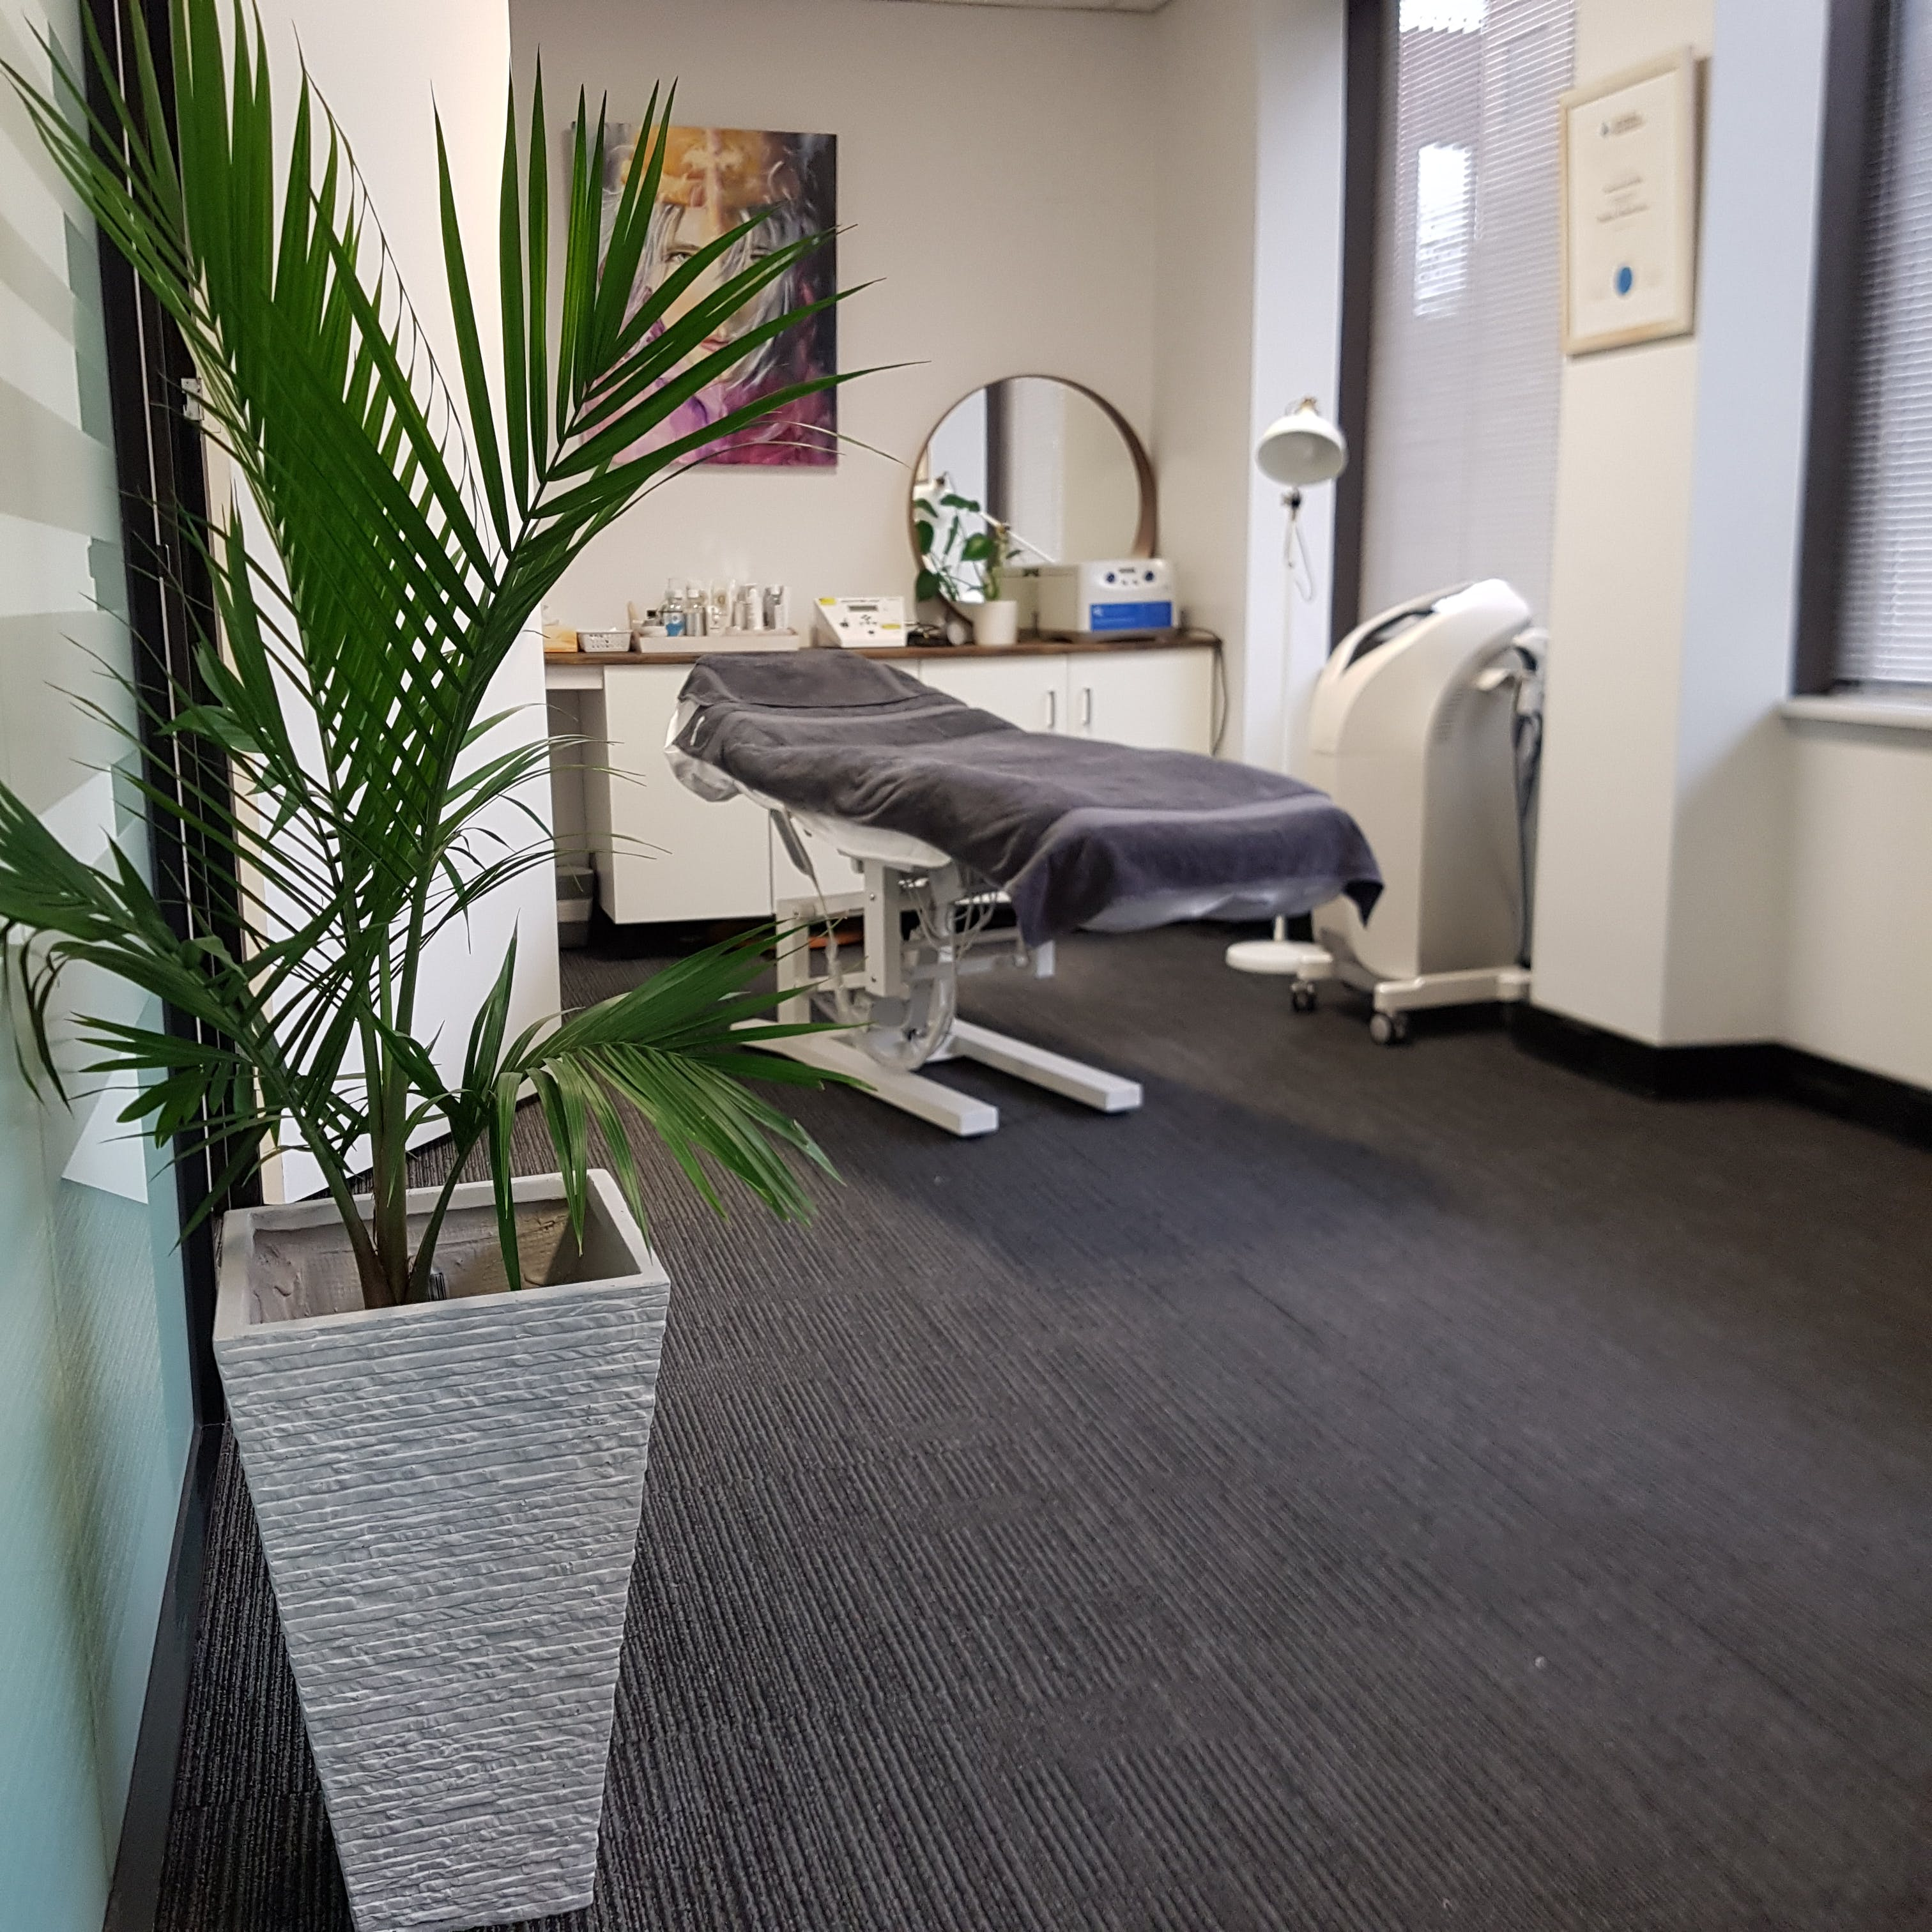 Treatment/consulting room, private office at Restore Skin Clinic, image 1